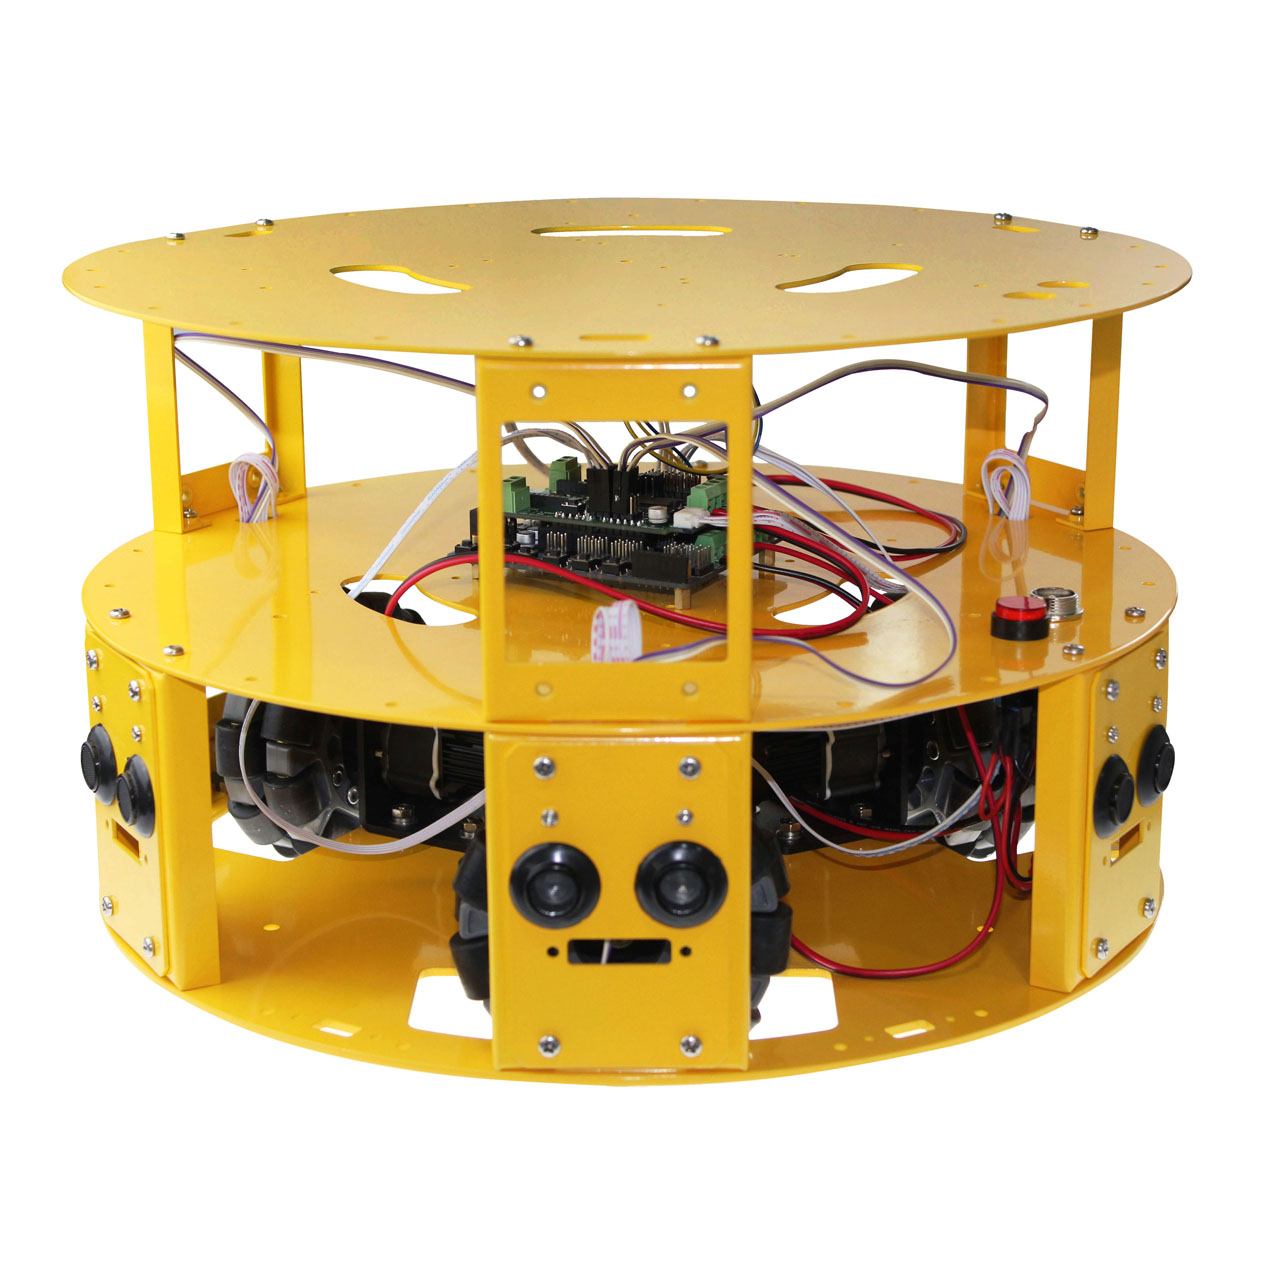 3WD-100mm-omni-wheel-Arduino-robotics